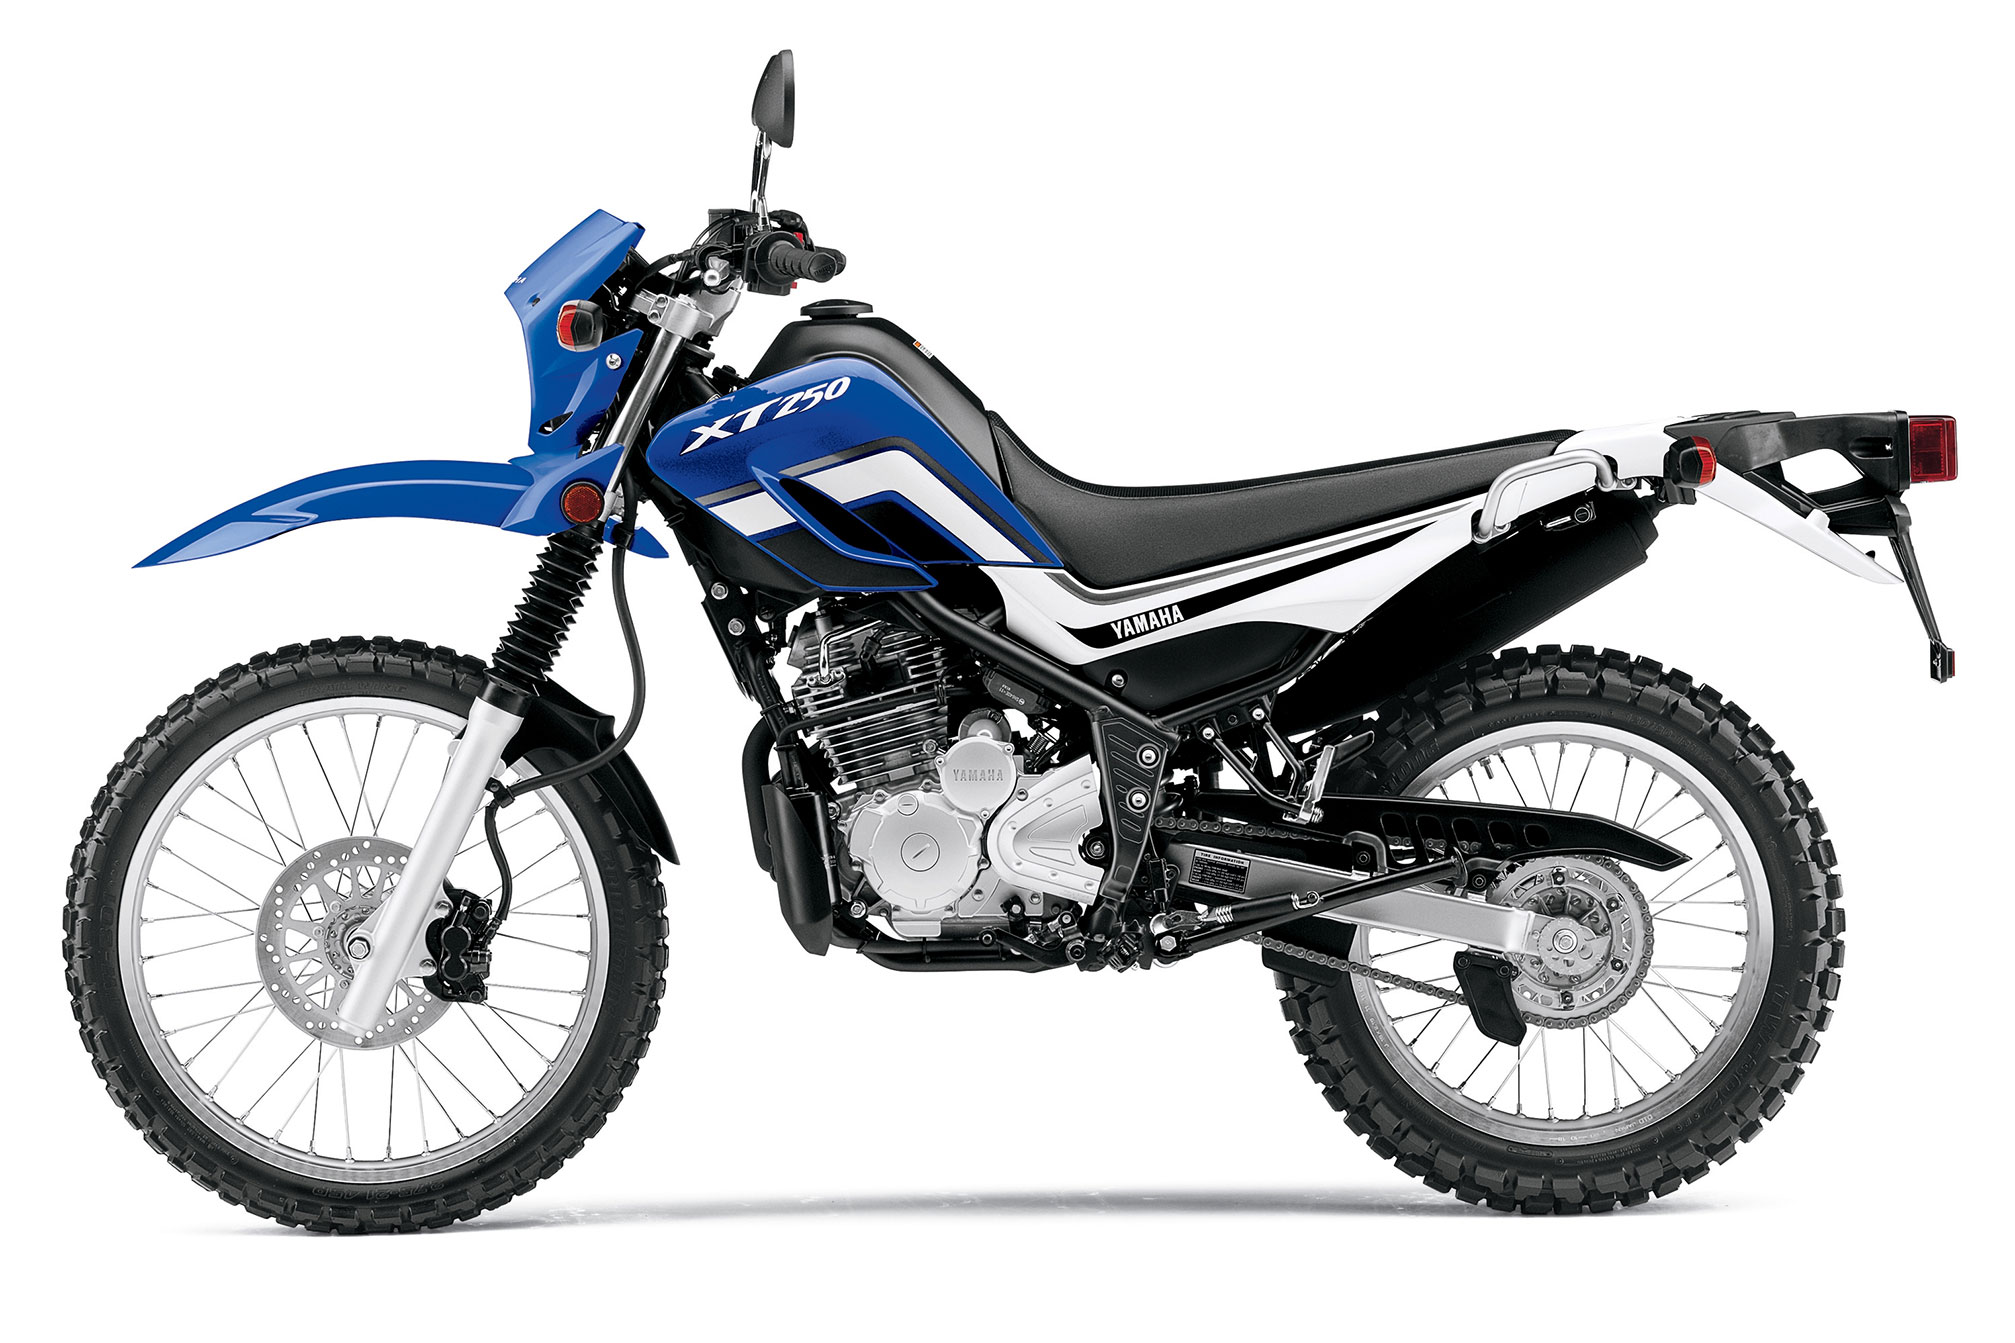 2015 yamaha xt250 review for Yamaha road motorcycles